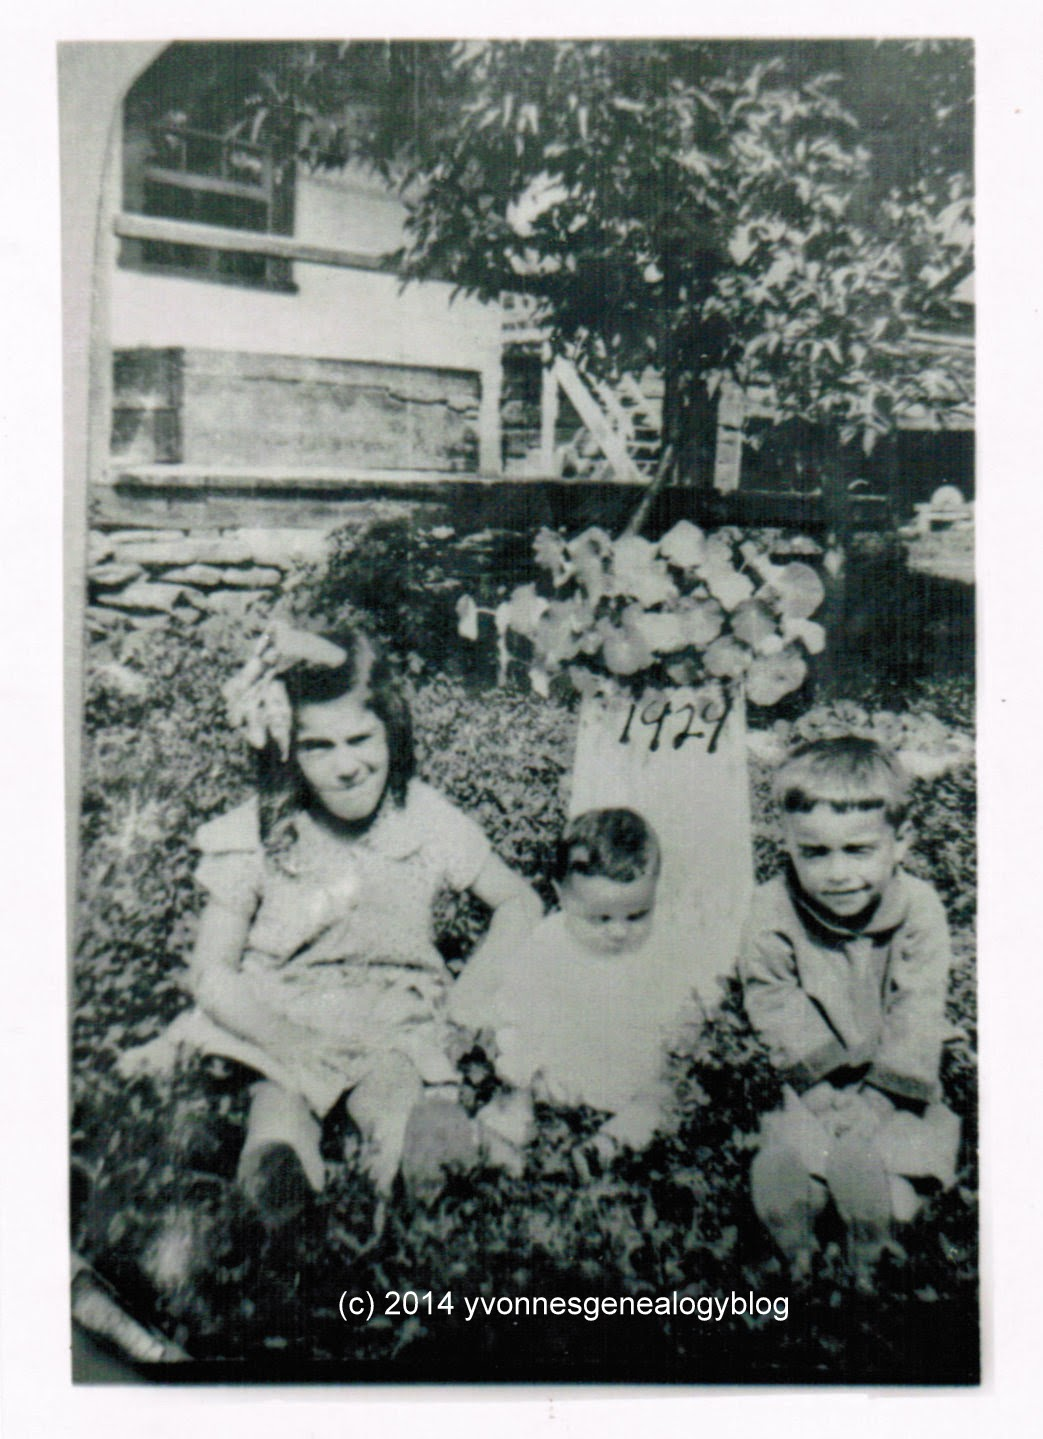 Maurice Belair with his sister Joan and their cousin Lucille